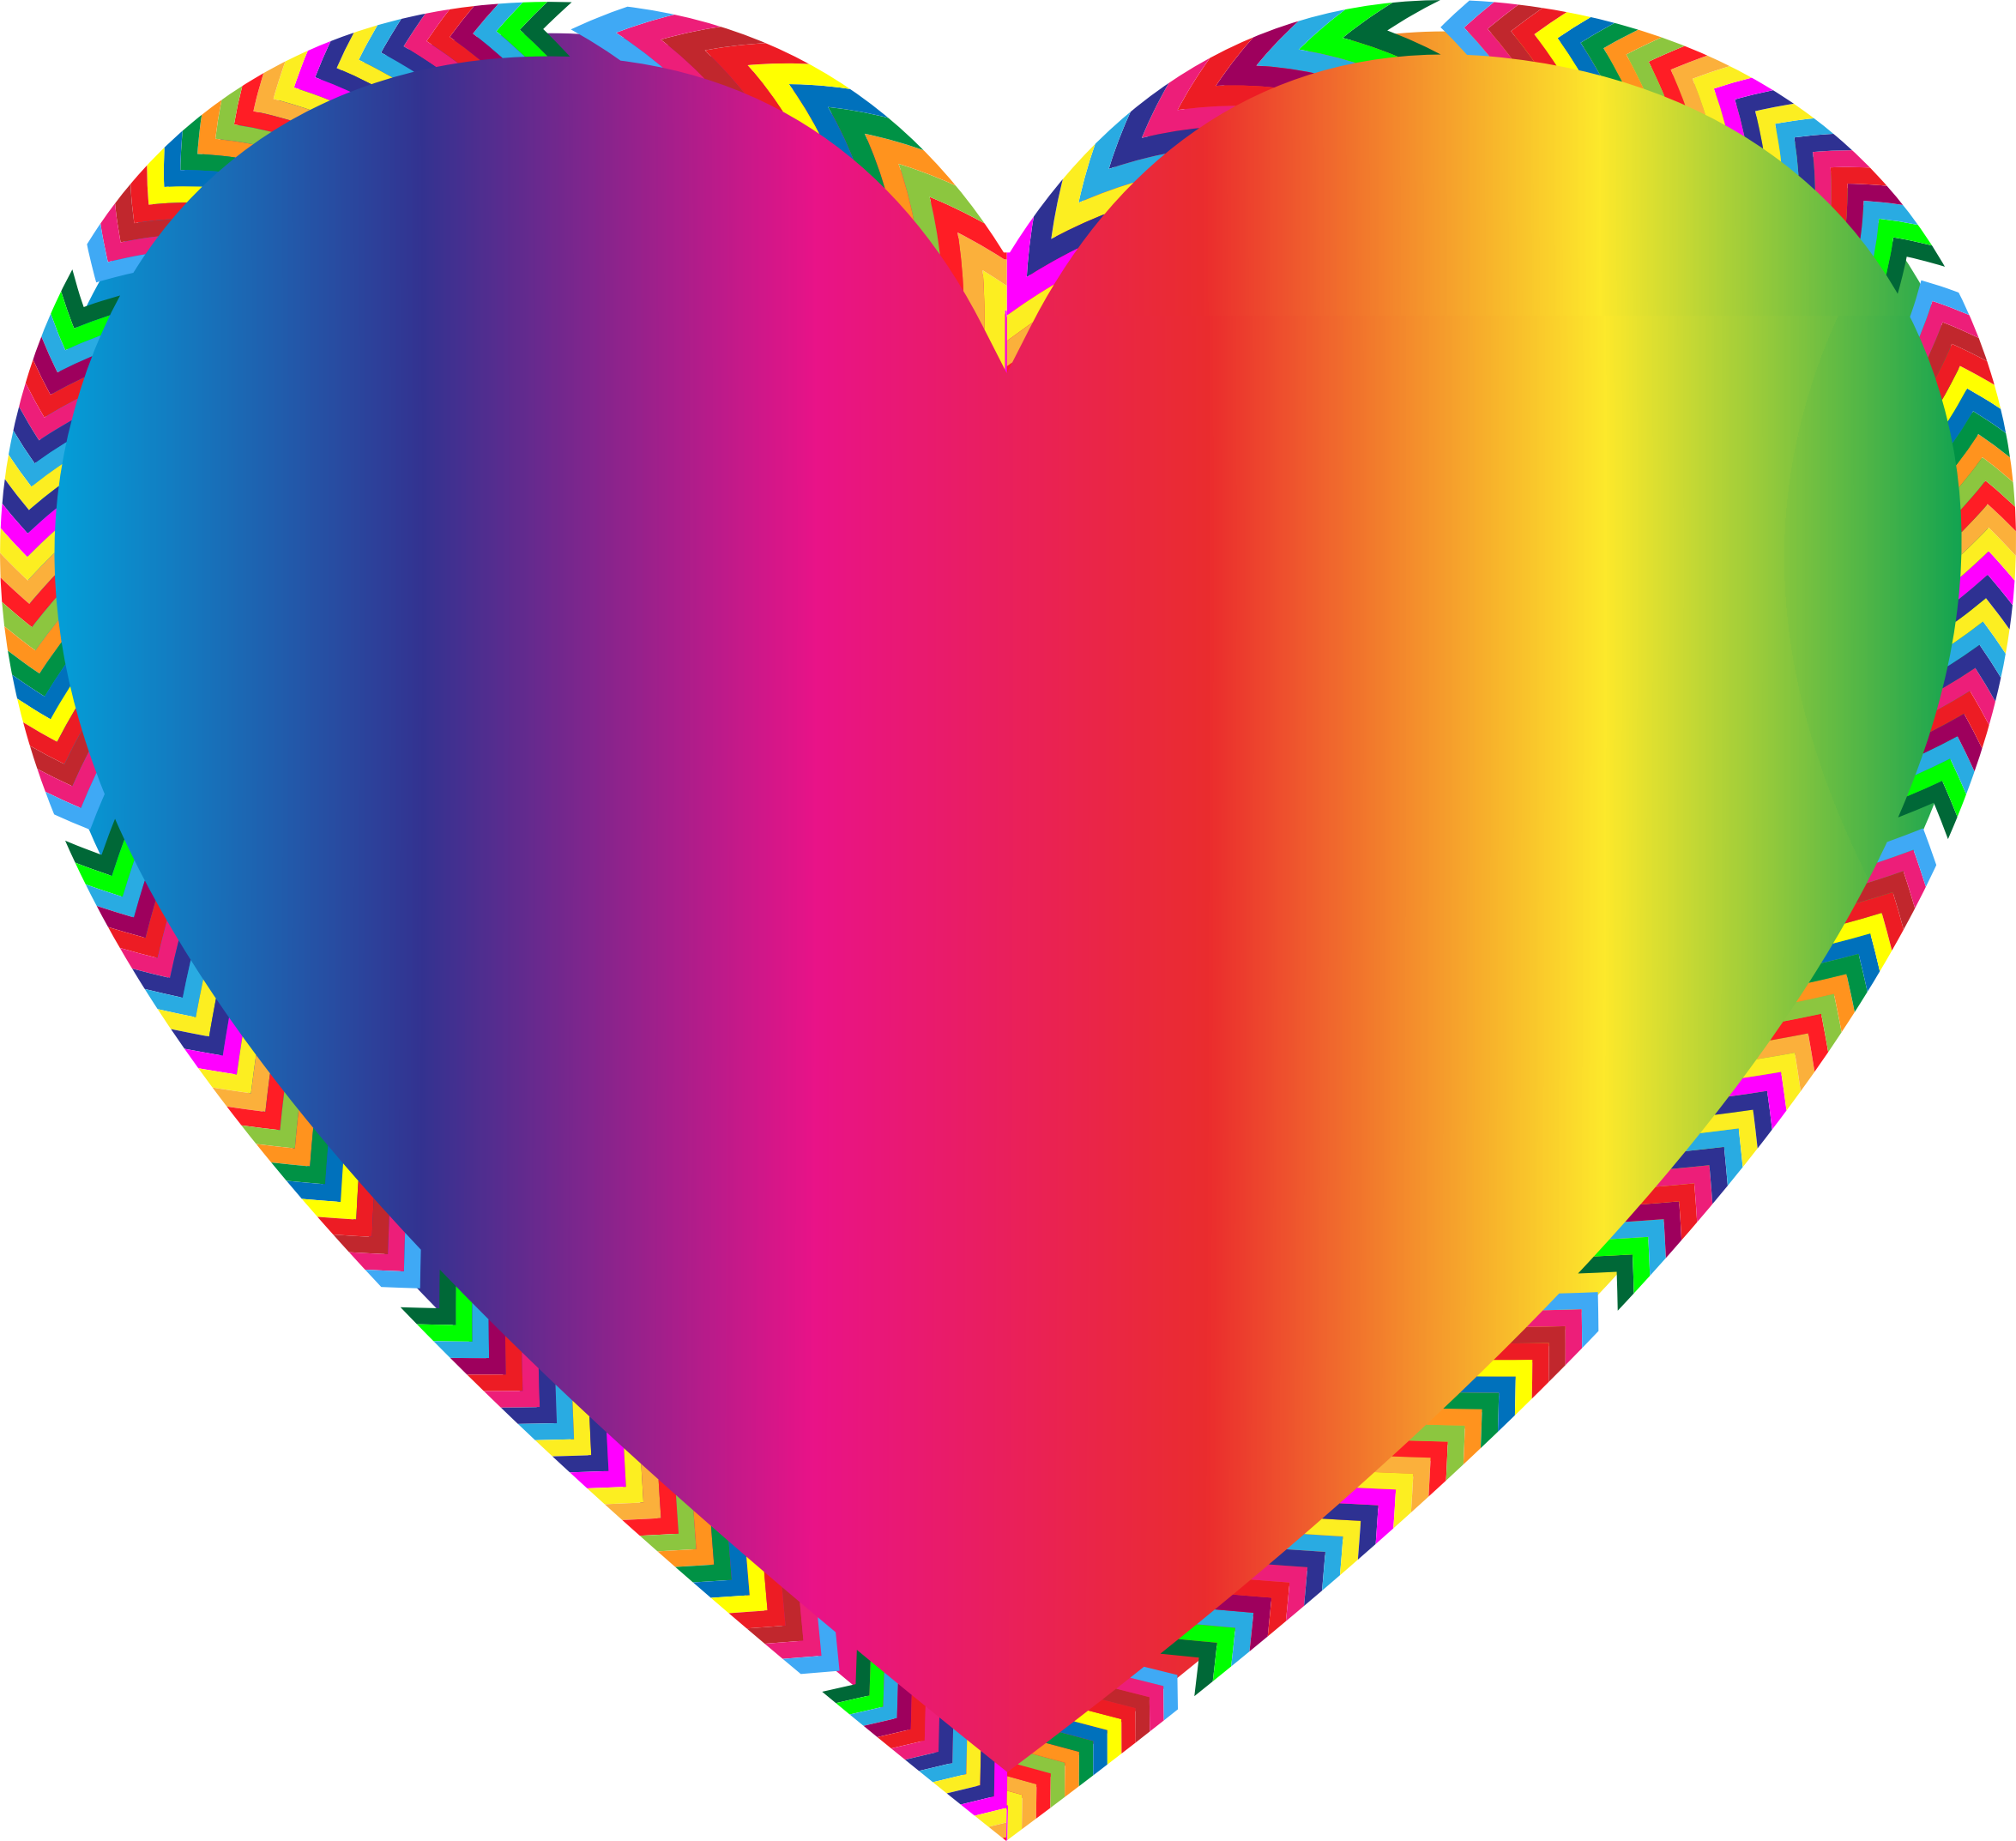 Clipart - Multicolored Arrows Heart Filled